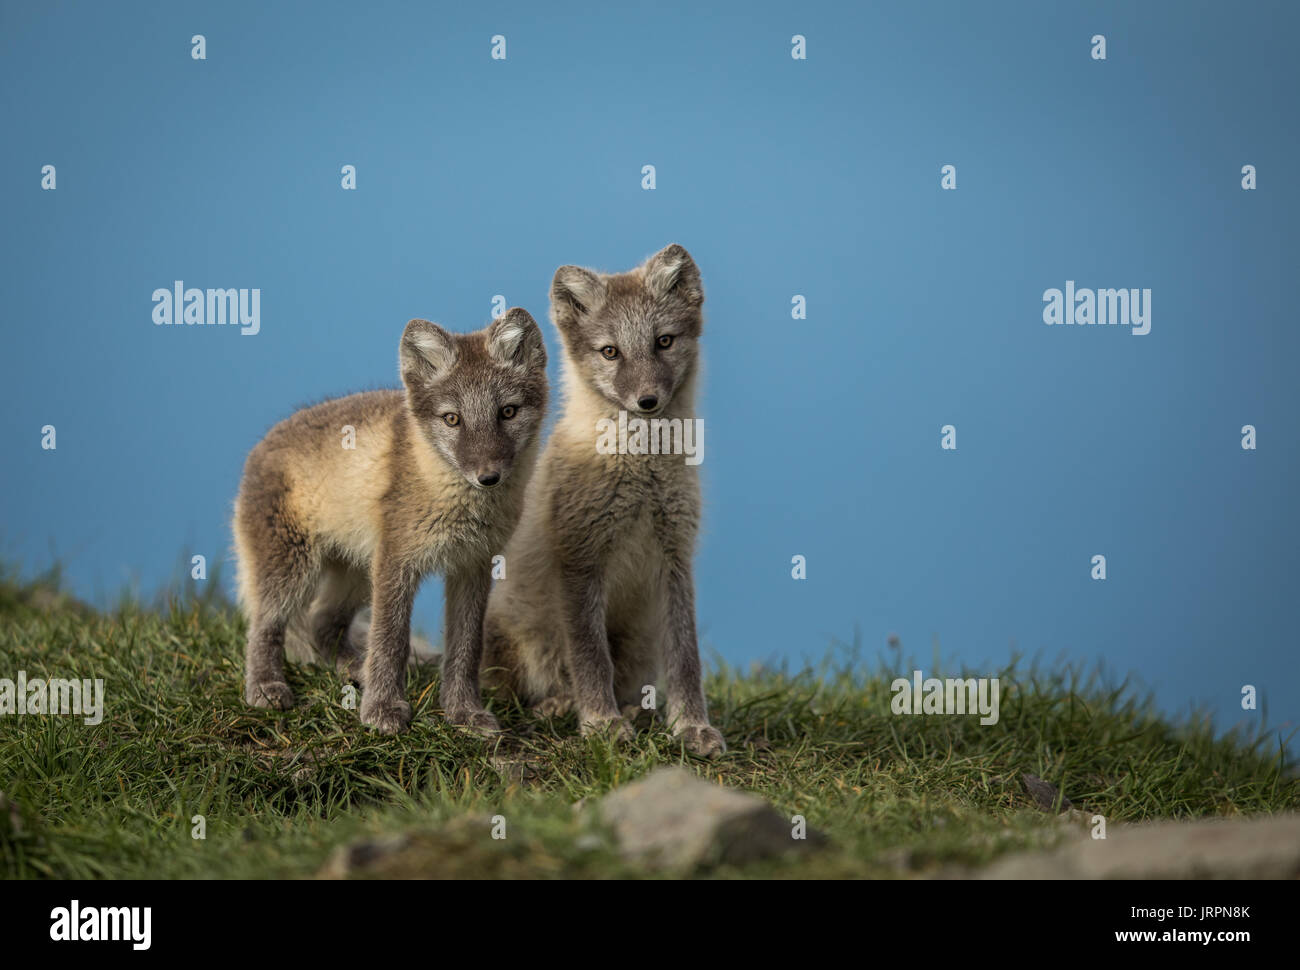 Arctic fox two cubs standing on grass with blue sky above, Svalbard - Stock Image